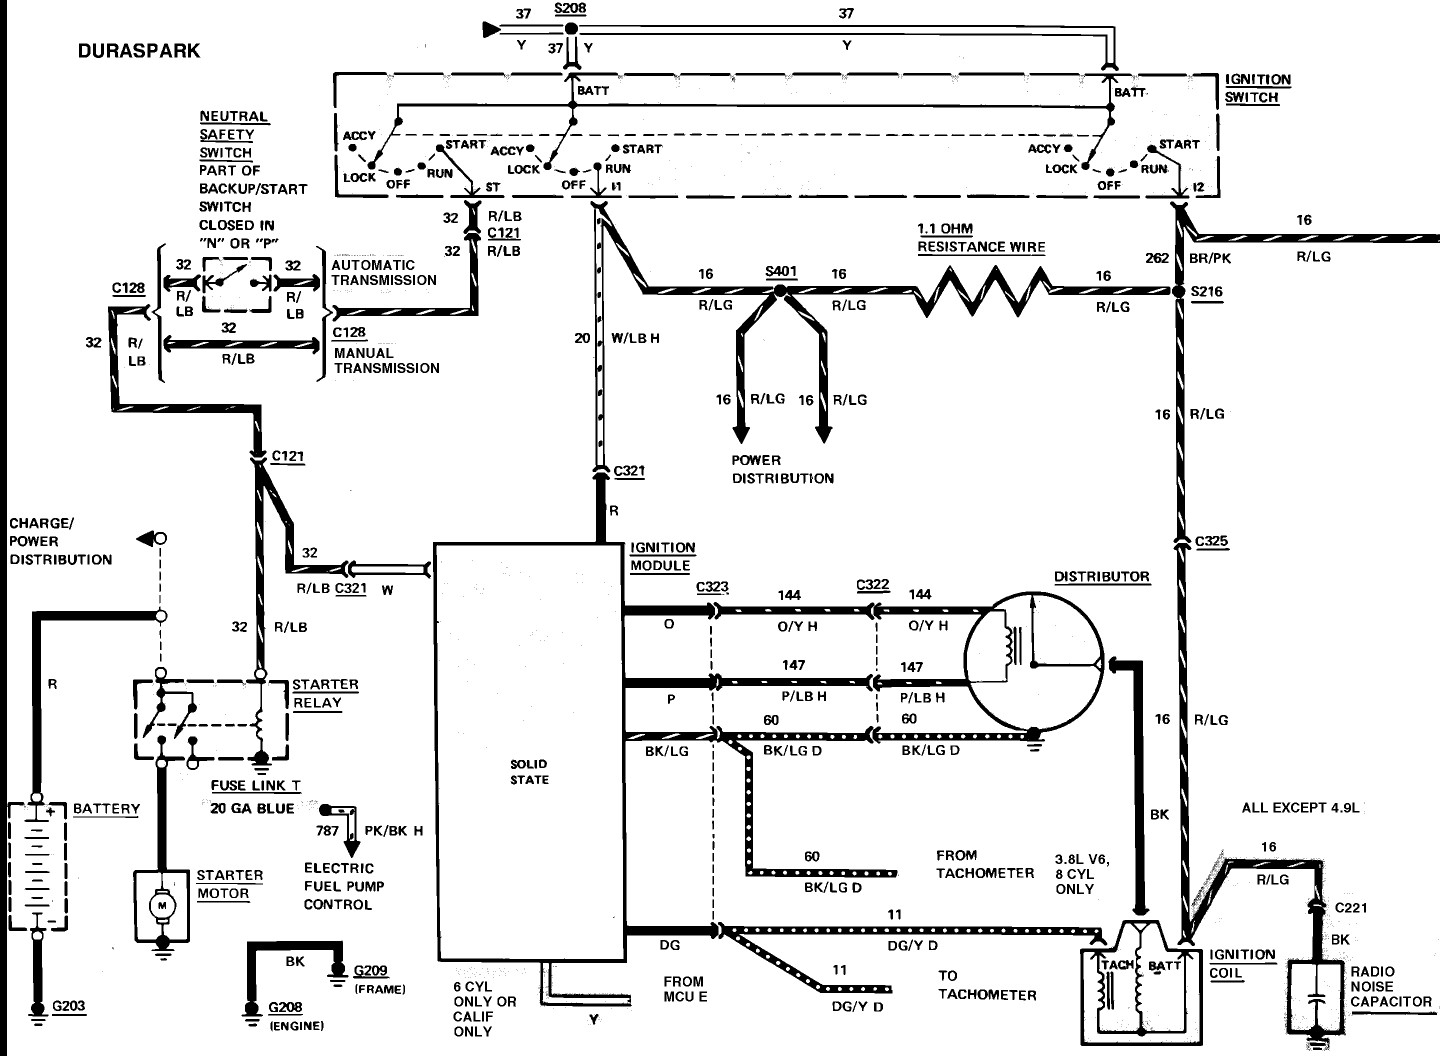 [QNCB_7524]  DIAGRAM] 94 F150 Ignition Switch Wiring Diagram FULL Version HD Quality Wiring  Diagram - ORBITALDIAGRAMS.SAINTMIHIEL-TOURISME.FR | Ignition Switch Schematic |  | Saintmihiel-tourisme.fr